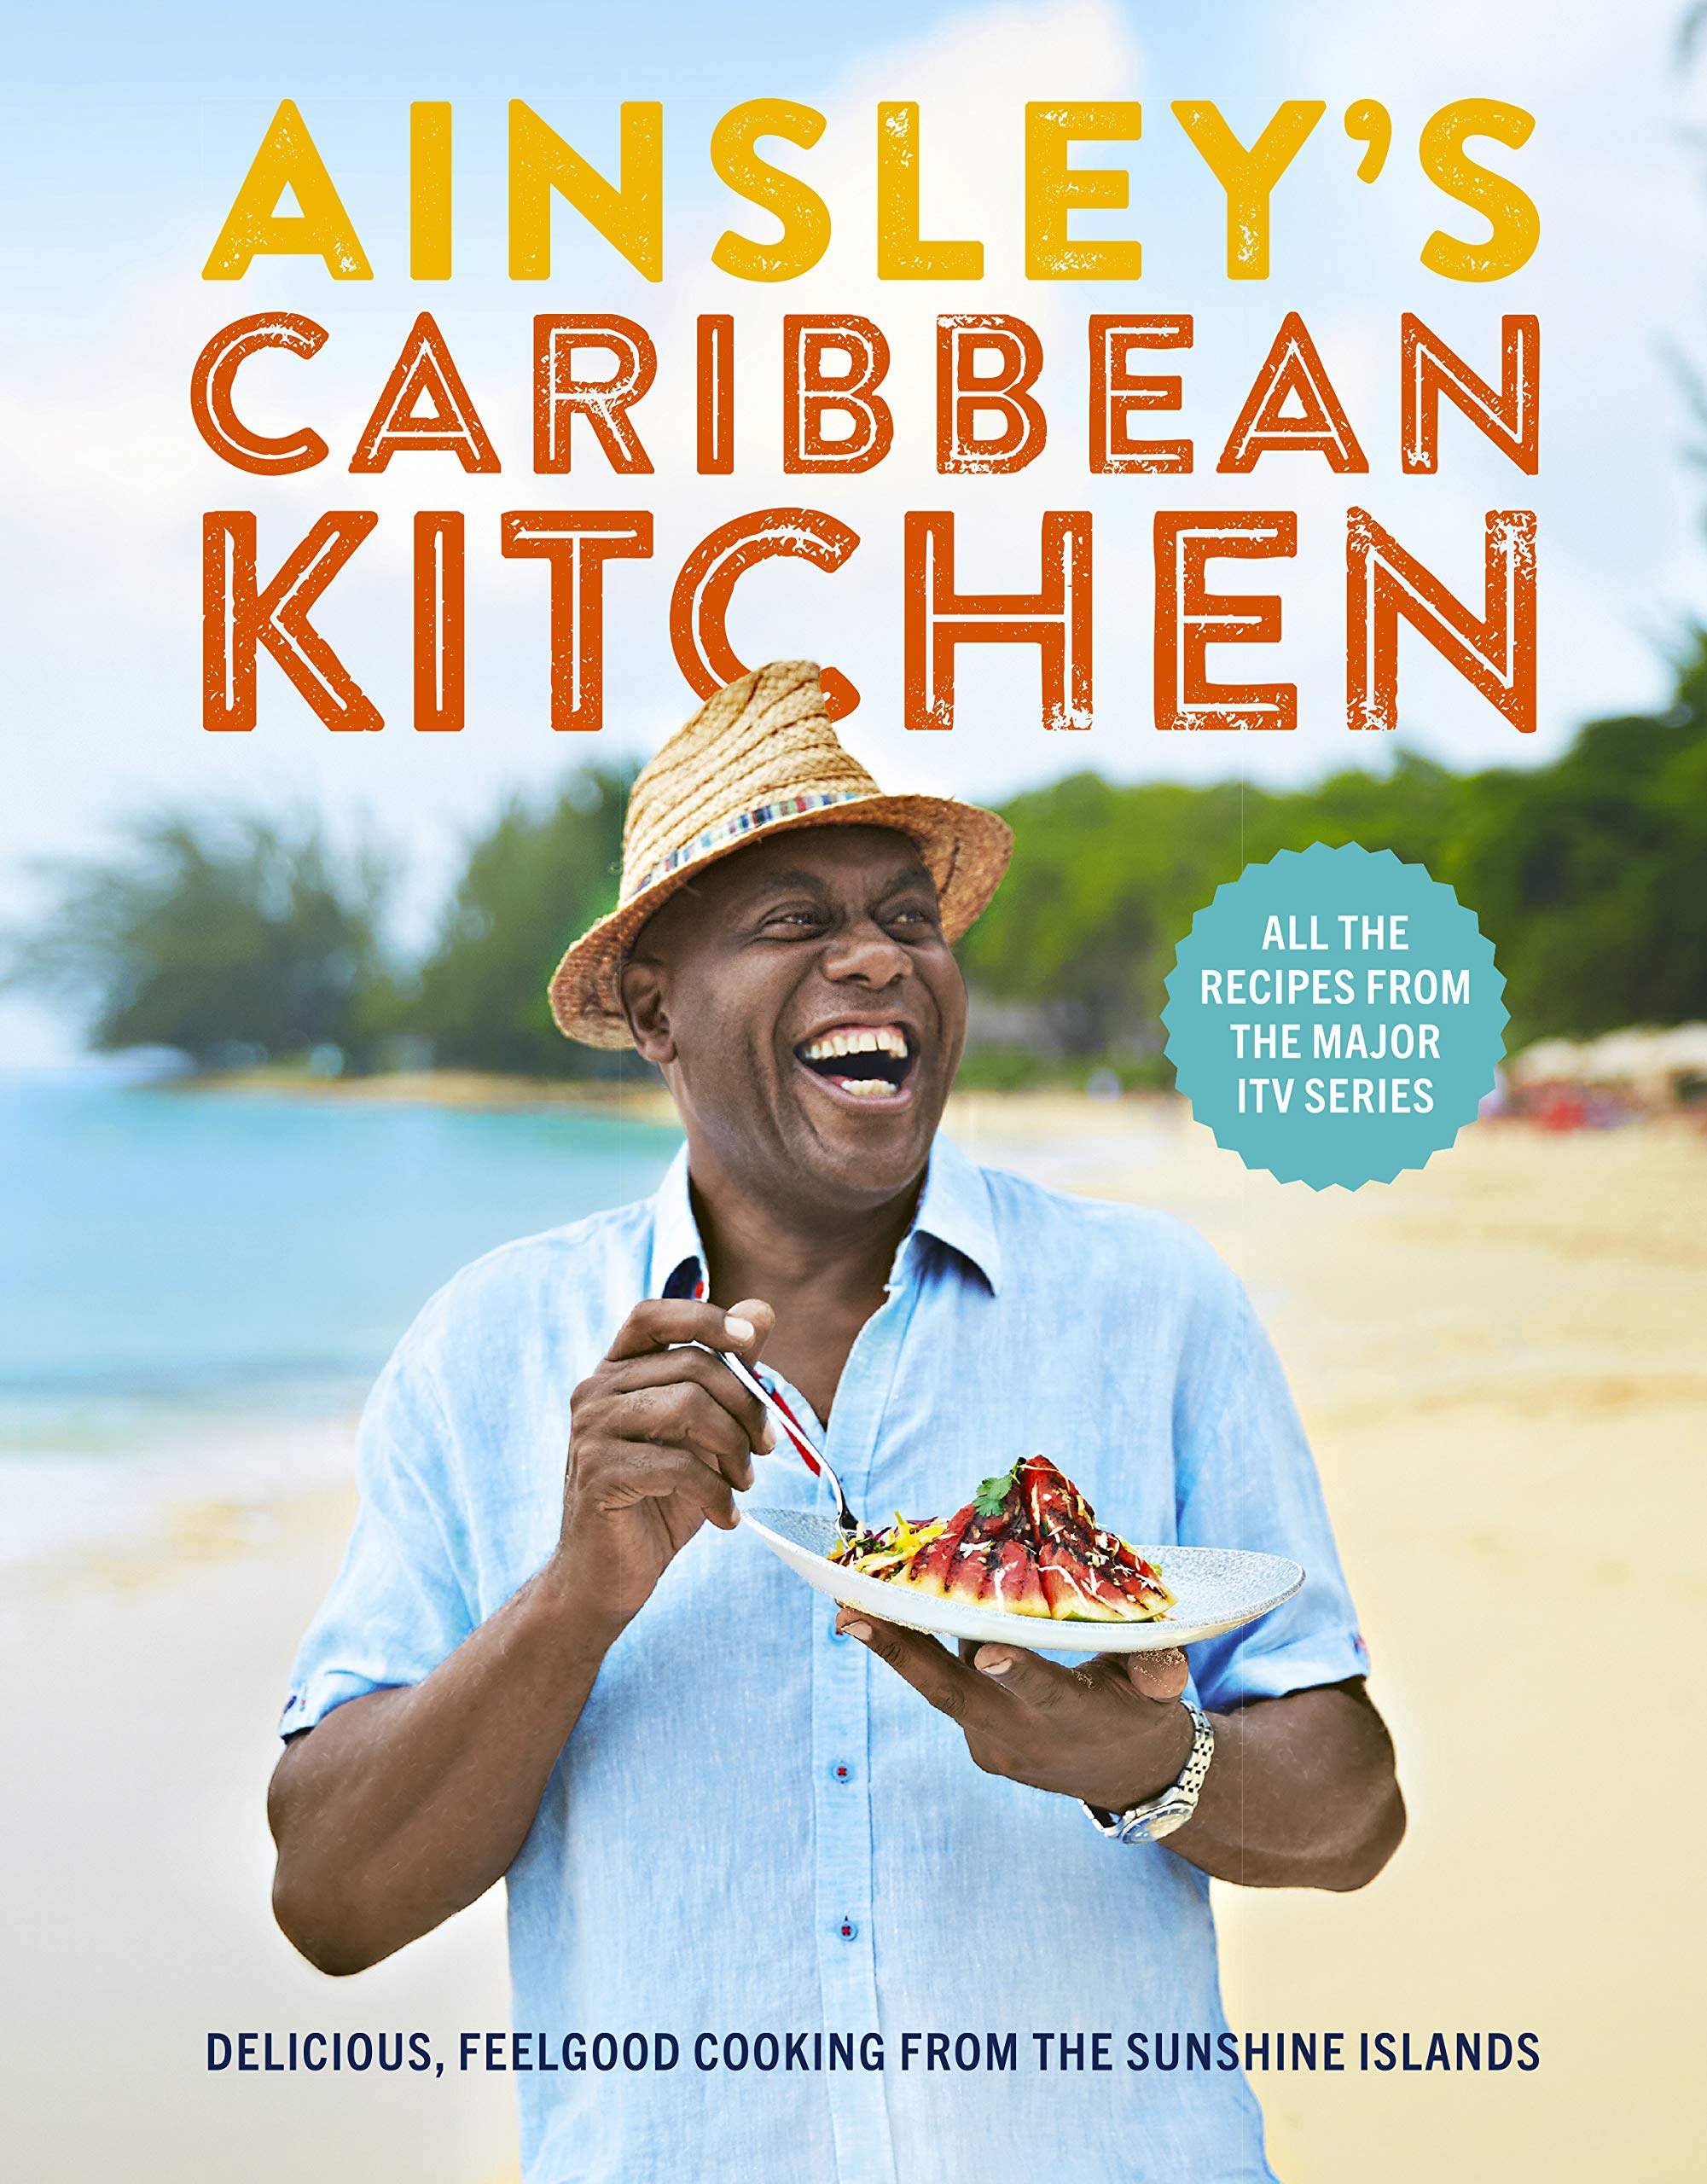 Ainsley's Caribbean Kitchen  Delicious Feelgood Cooking From The Sunshine Islands. All The Recipes From The Major ITV Series  English Edition